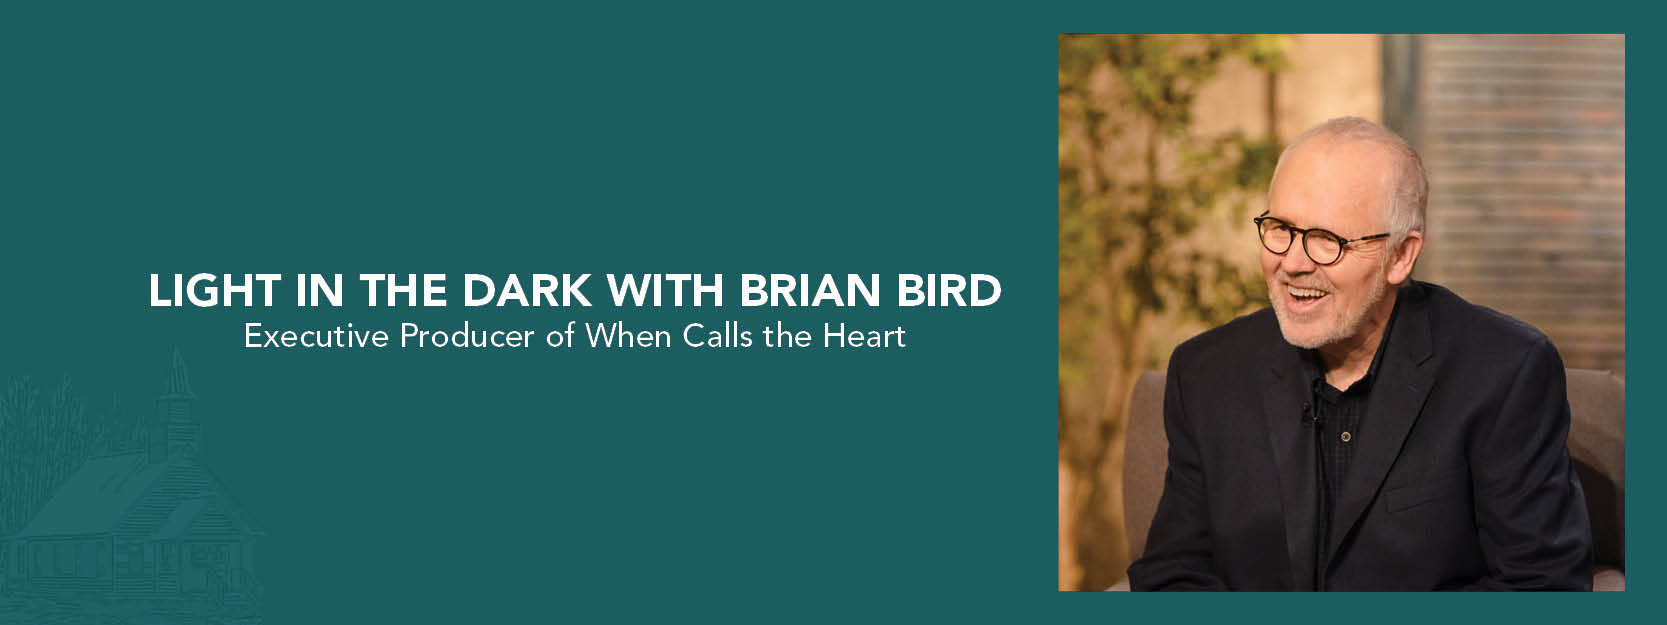 Light in the Dark with Brian Bird